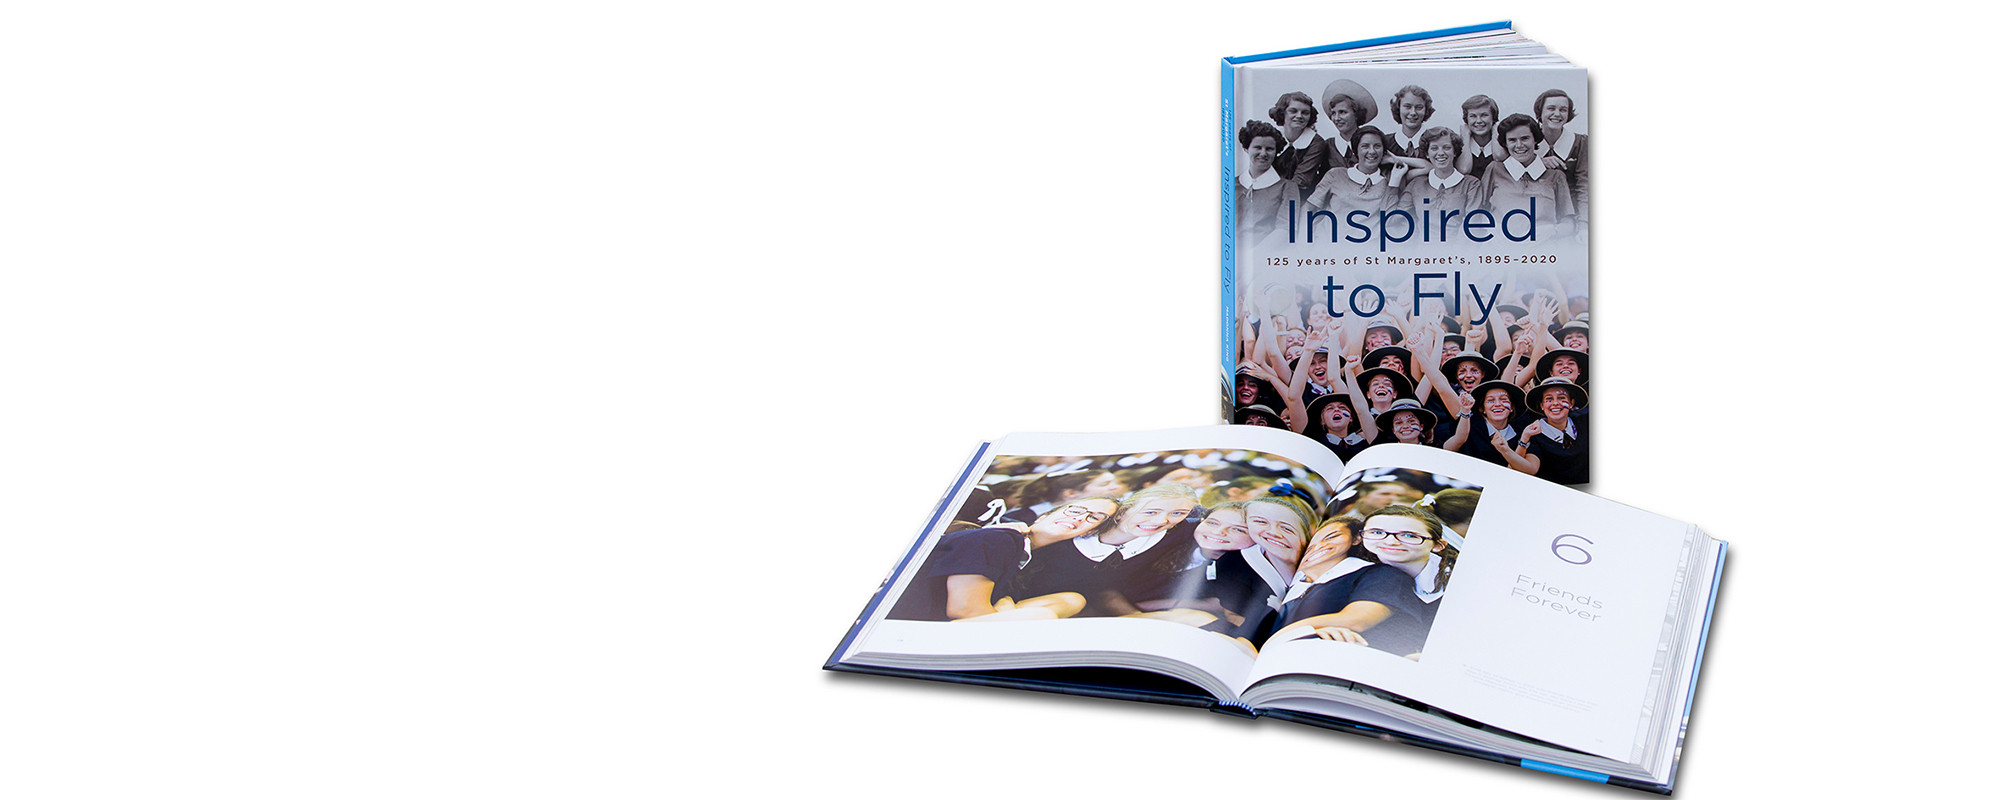 You are invited to the 'Inspired to Fly' Book Launch